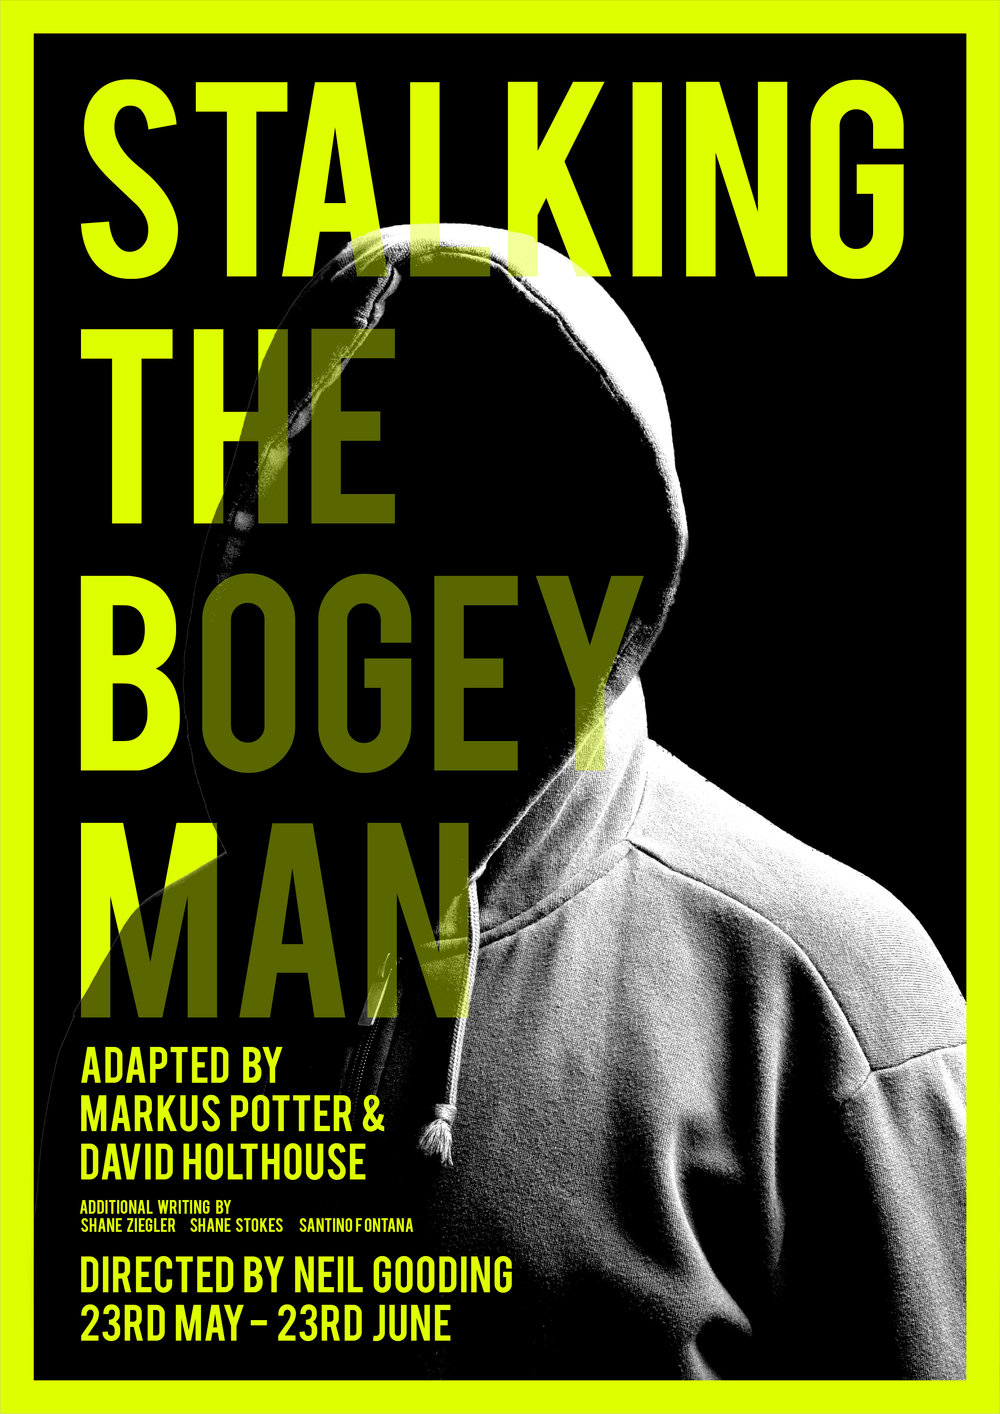 Copy of RLP19763_Stalking the Bogeyman_Web_A4